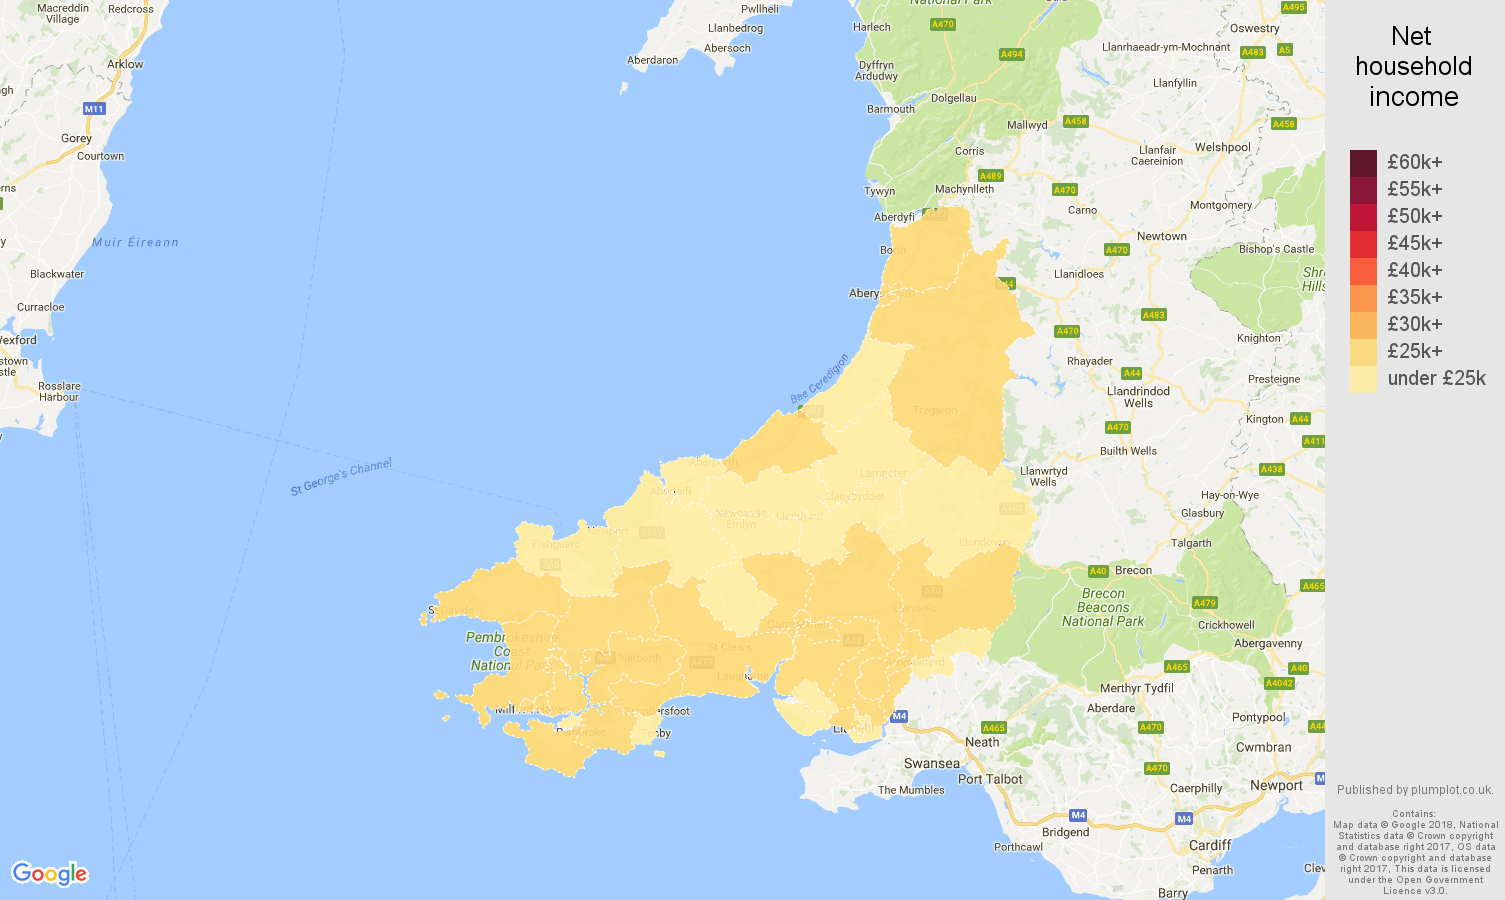 Dyfed net household income map